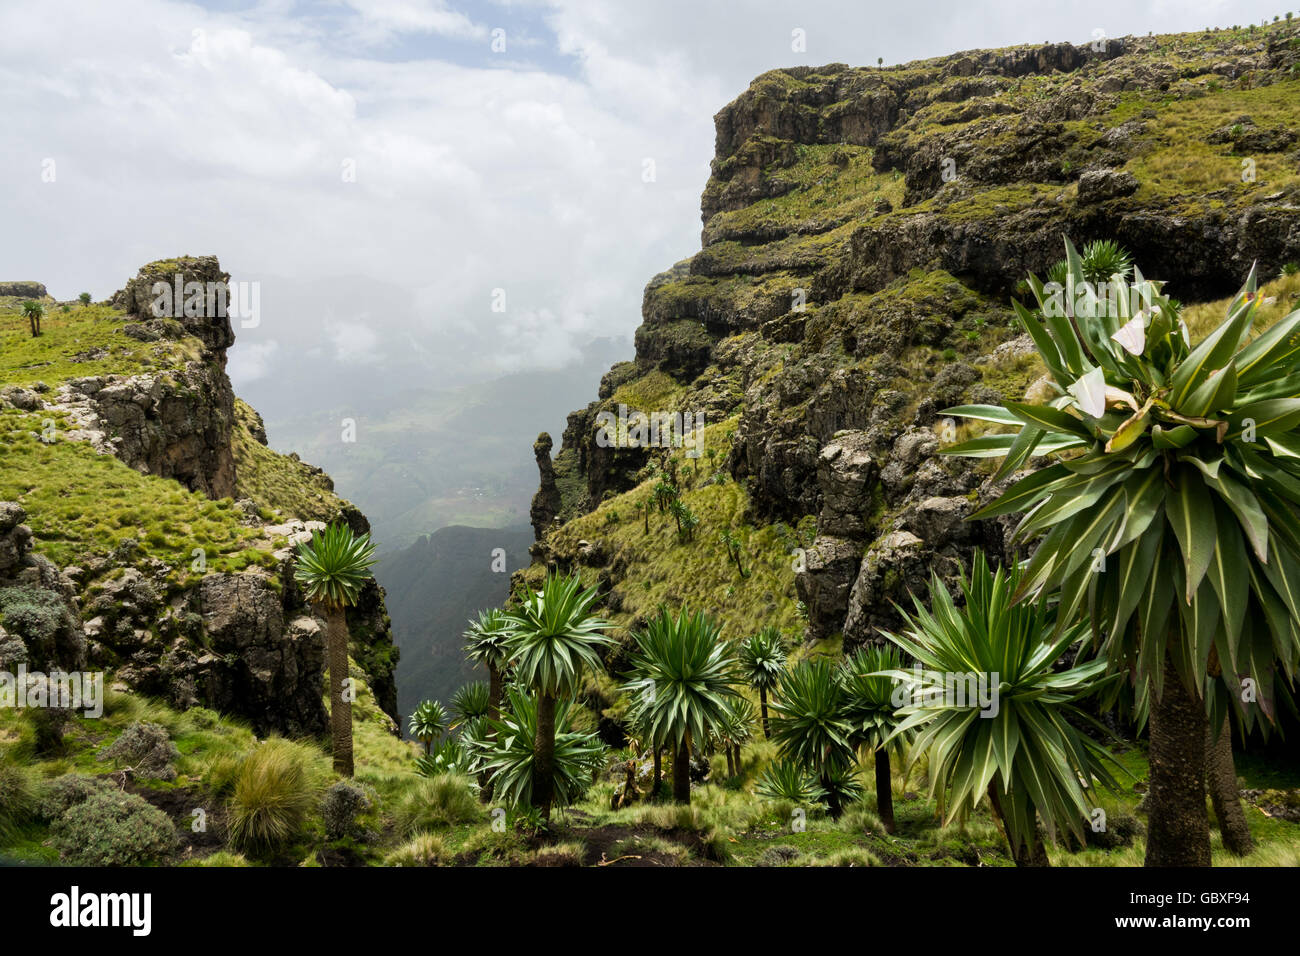 looking through a canyon in the Simien Mountains National Park, Ethiopia - Stock Image